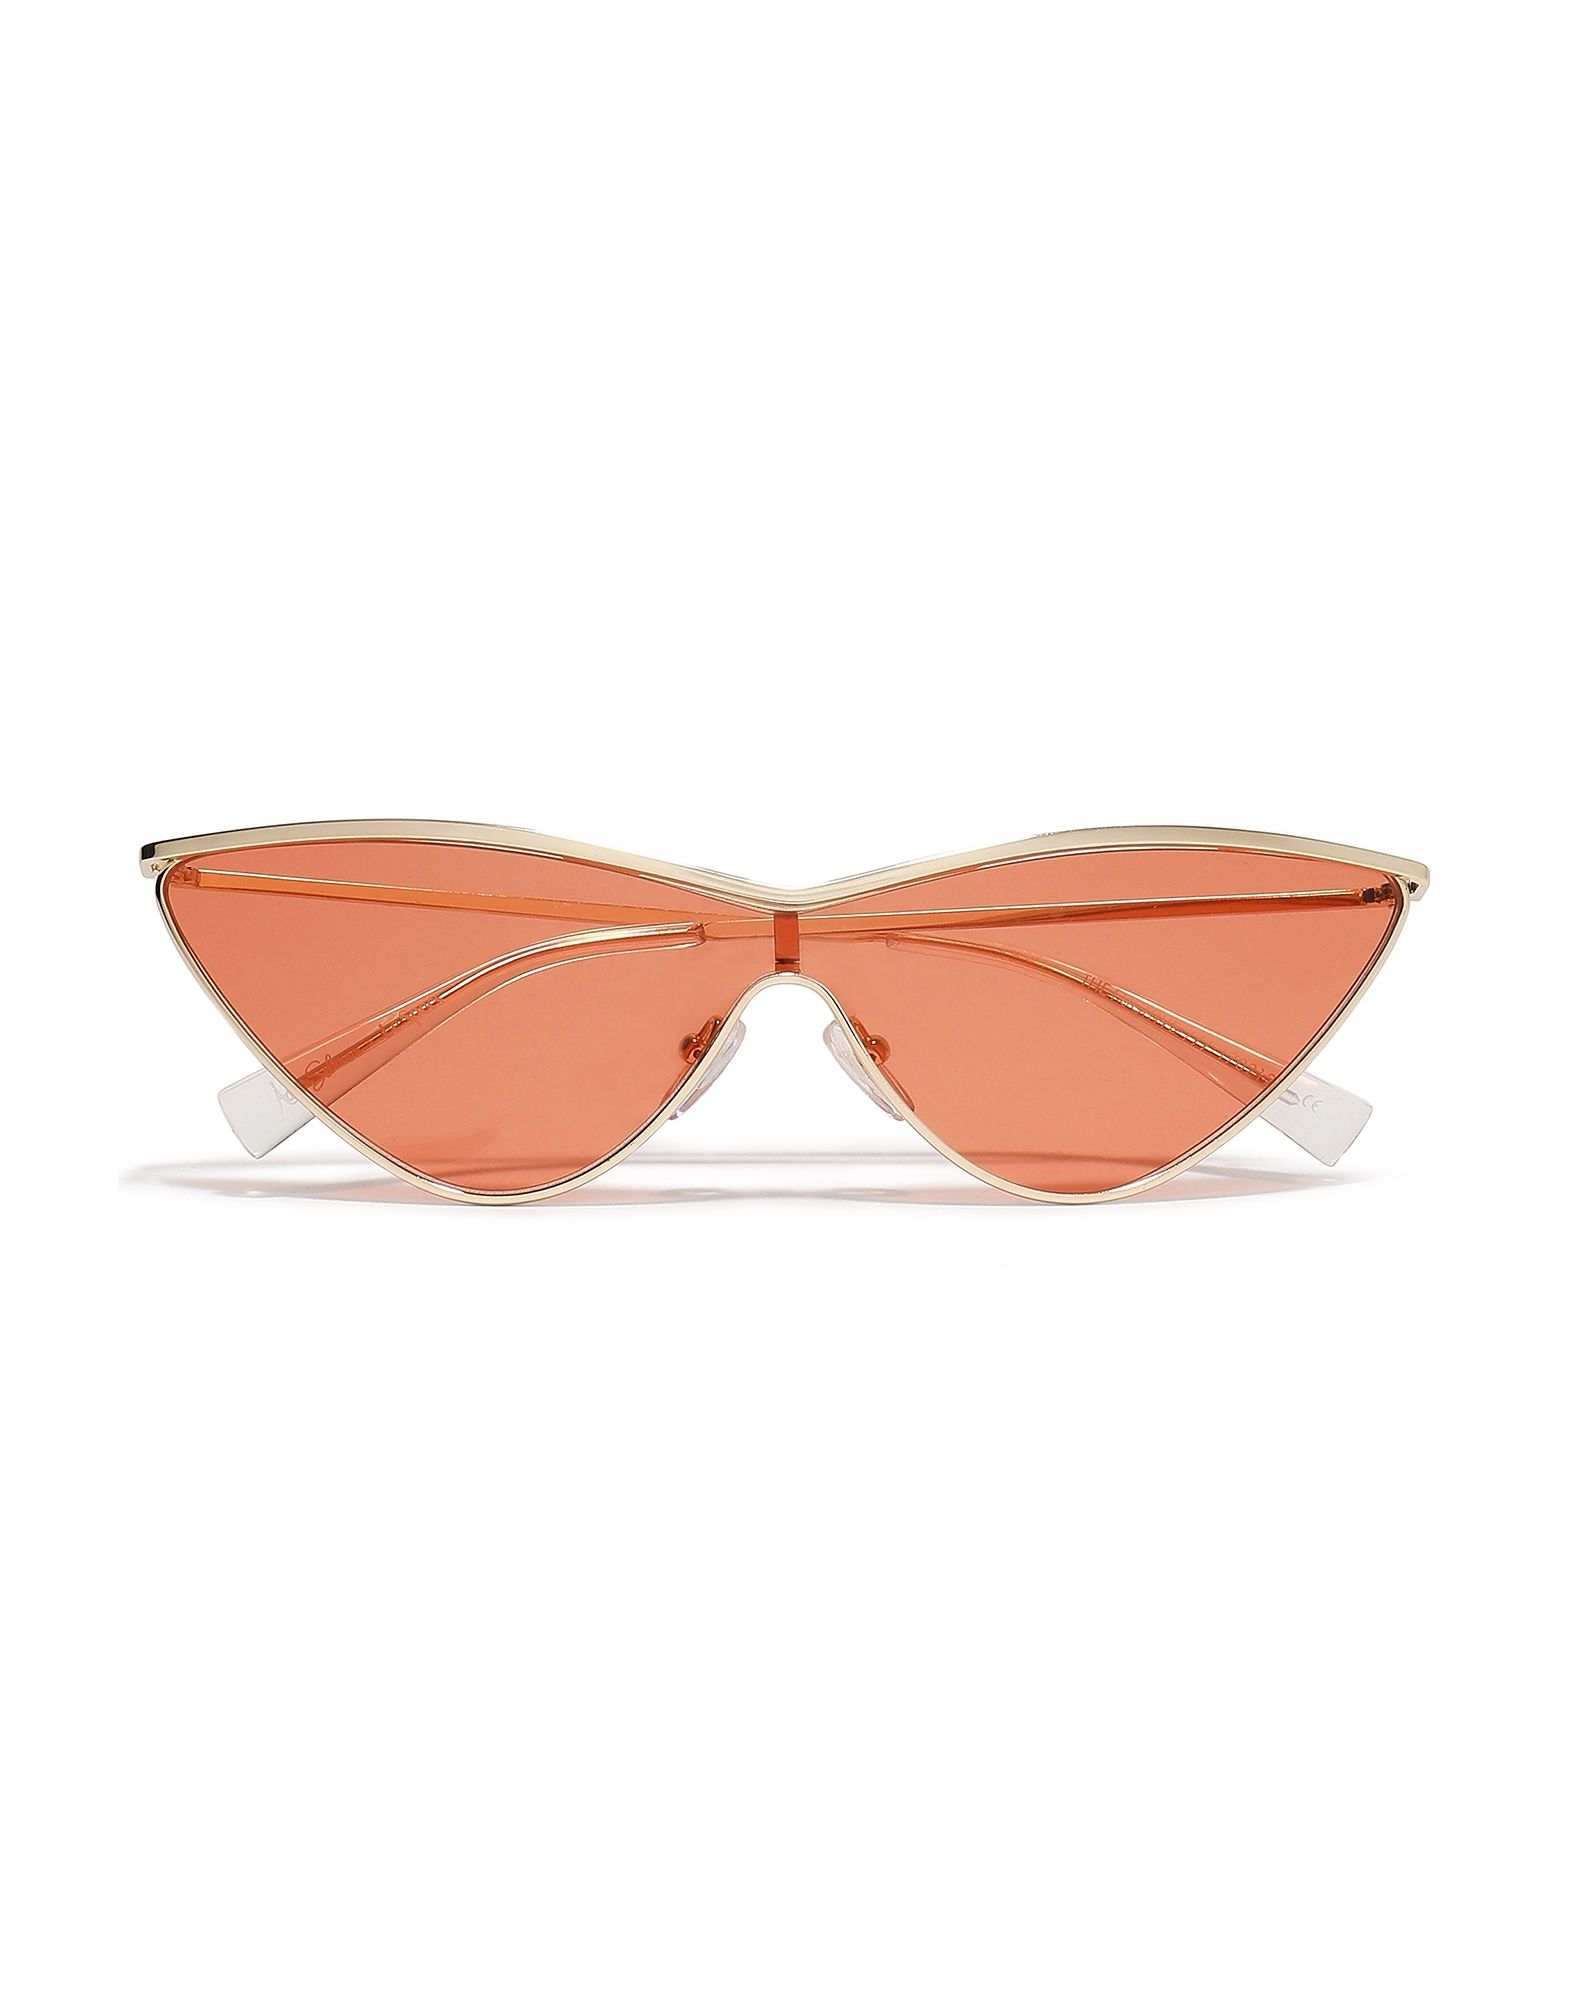 ADAM SELMAN x LE SPECS Sunglasses - Item 46722959